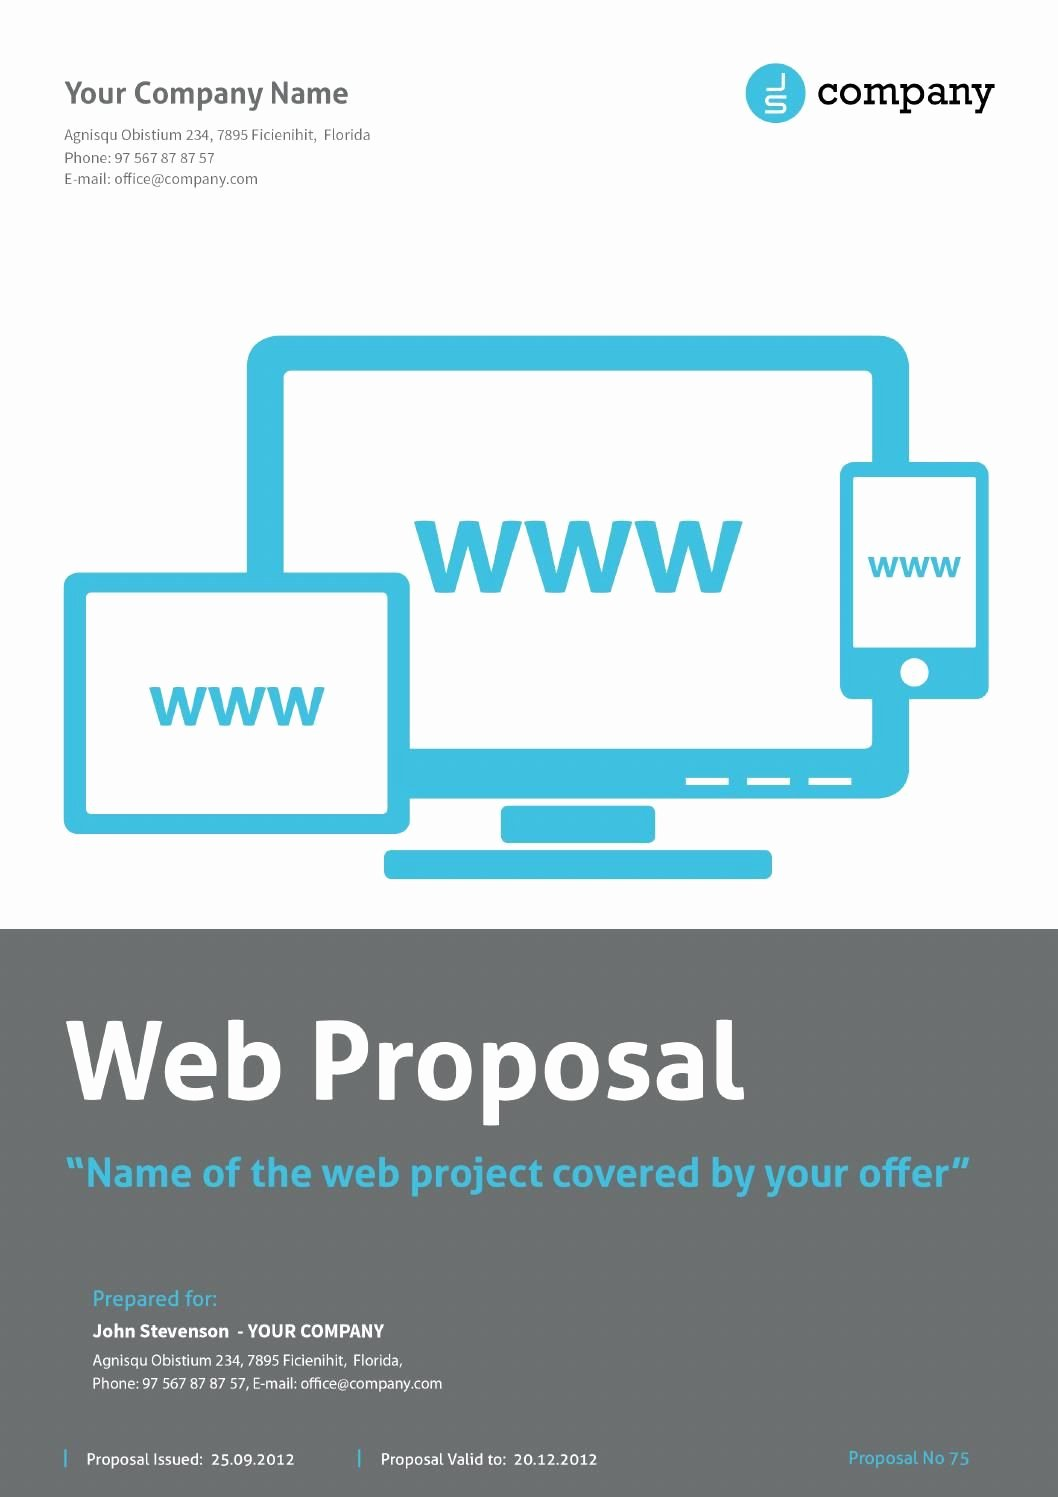 Free Web Design Proposal Template Fresh Web Proposal by Paulnomade Documents